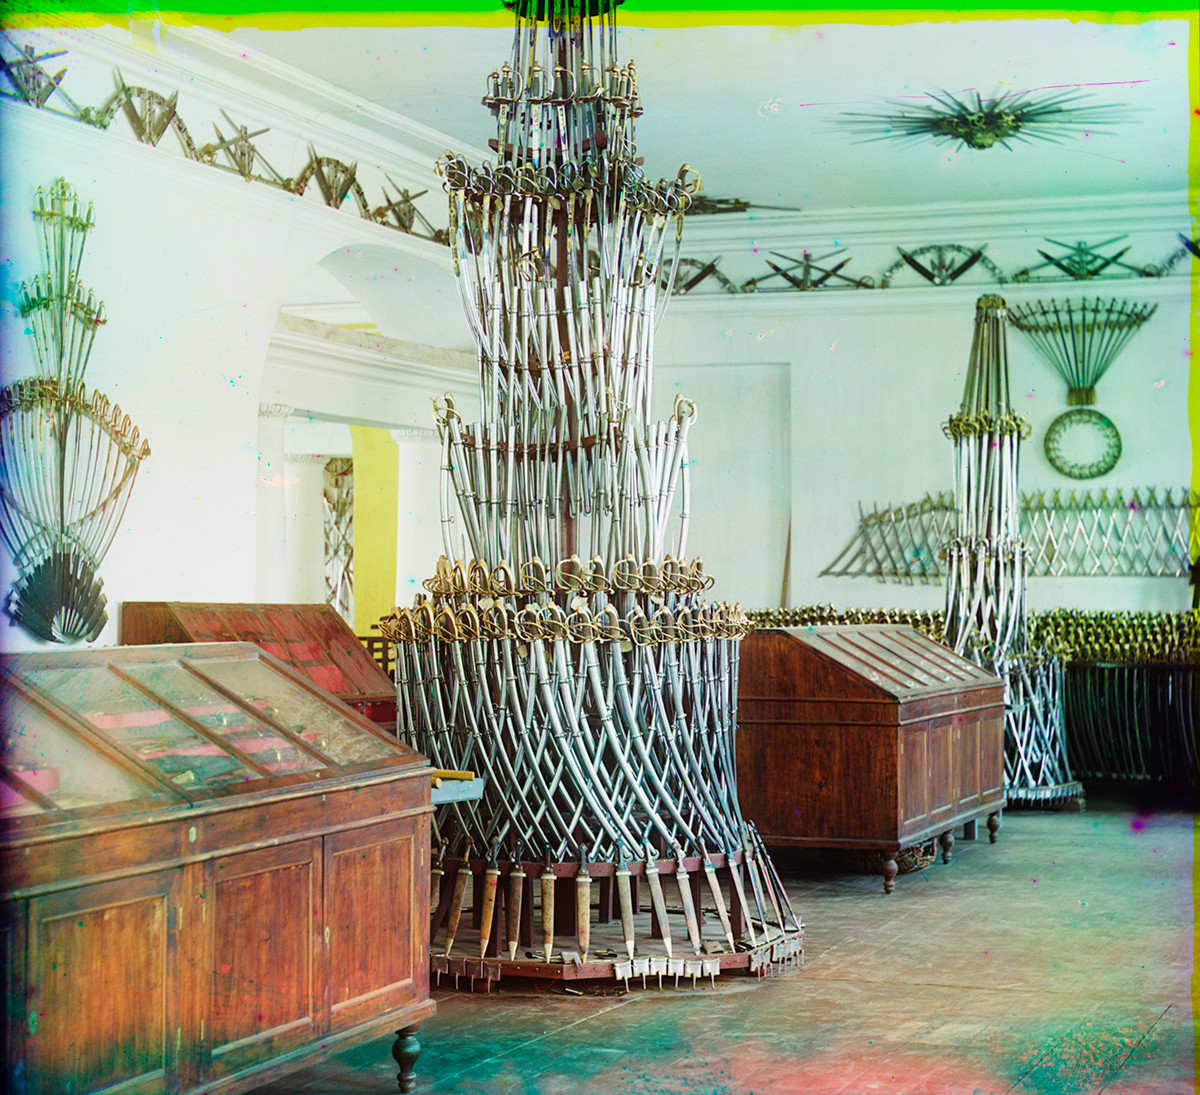 Arsenal Museum. Display of Zlatoust sabres & other cold steel weapons. 1909.